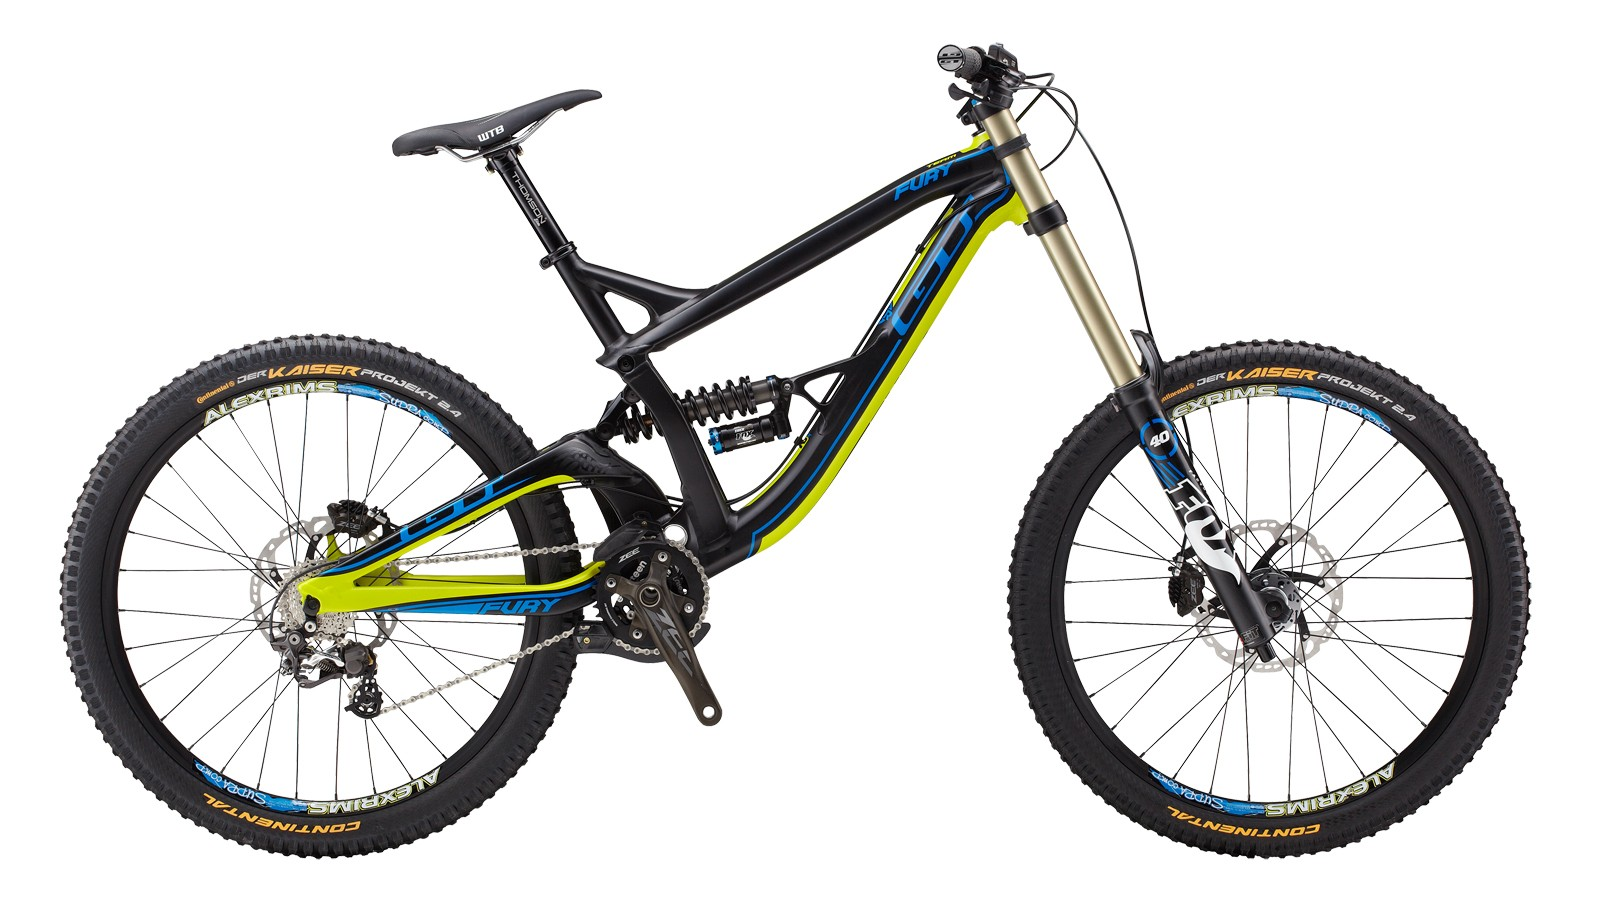 The recalled Fury Team model is black with lime green and blue accents